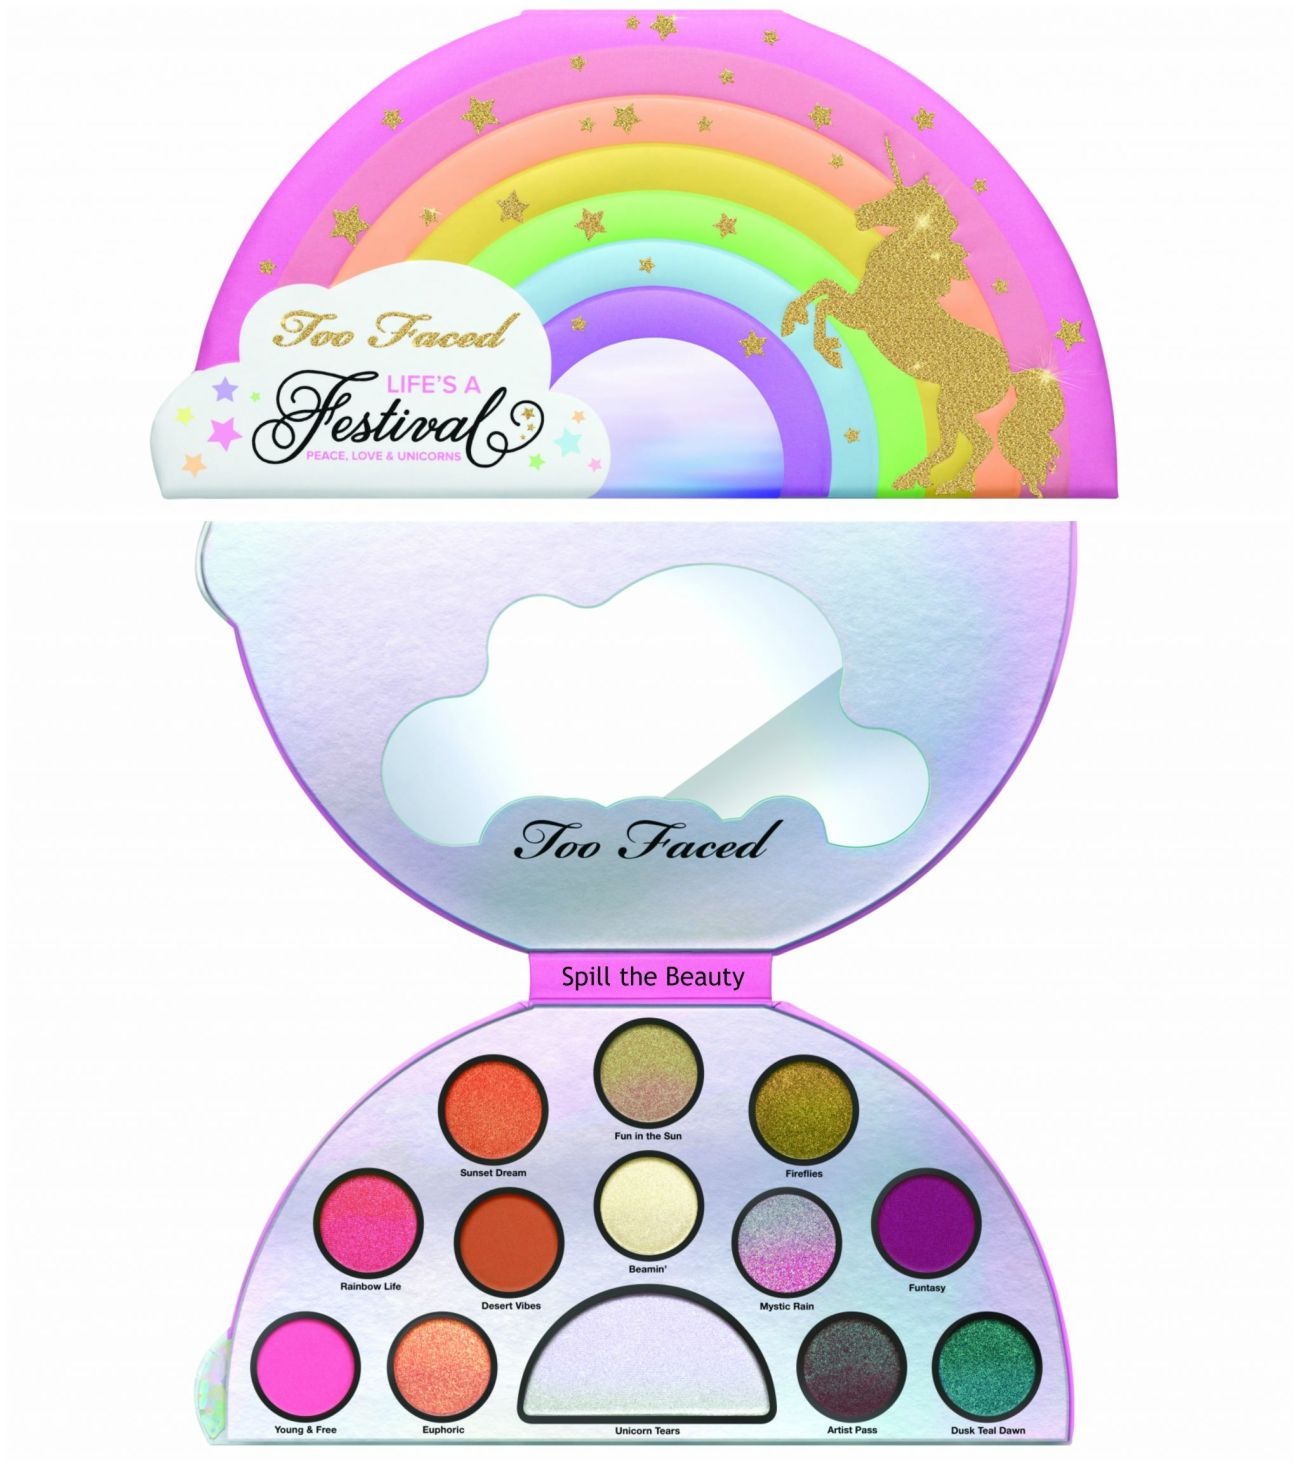 too faced life's a festival collection life's a festival eyeshadow palette